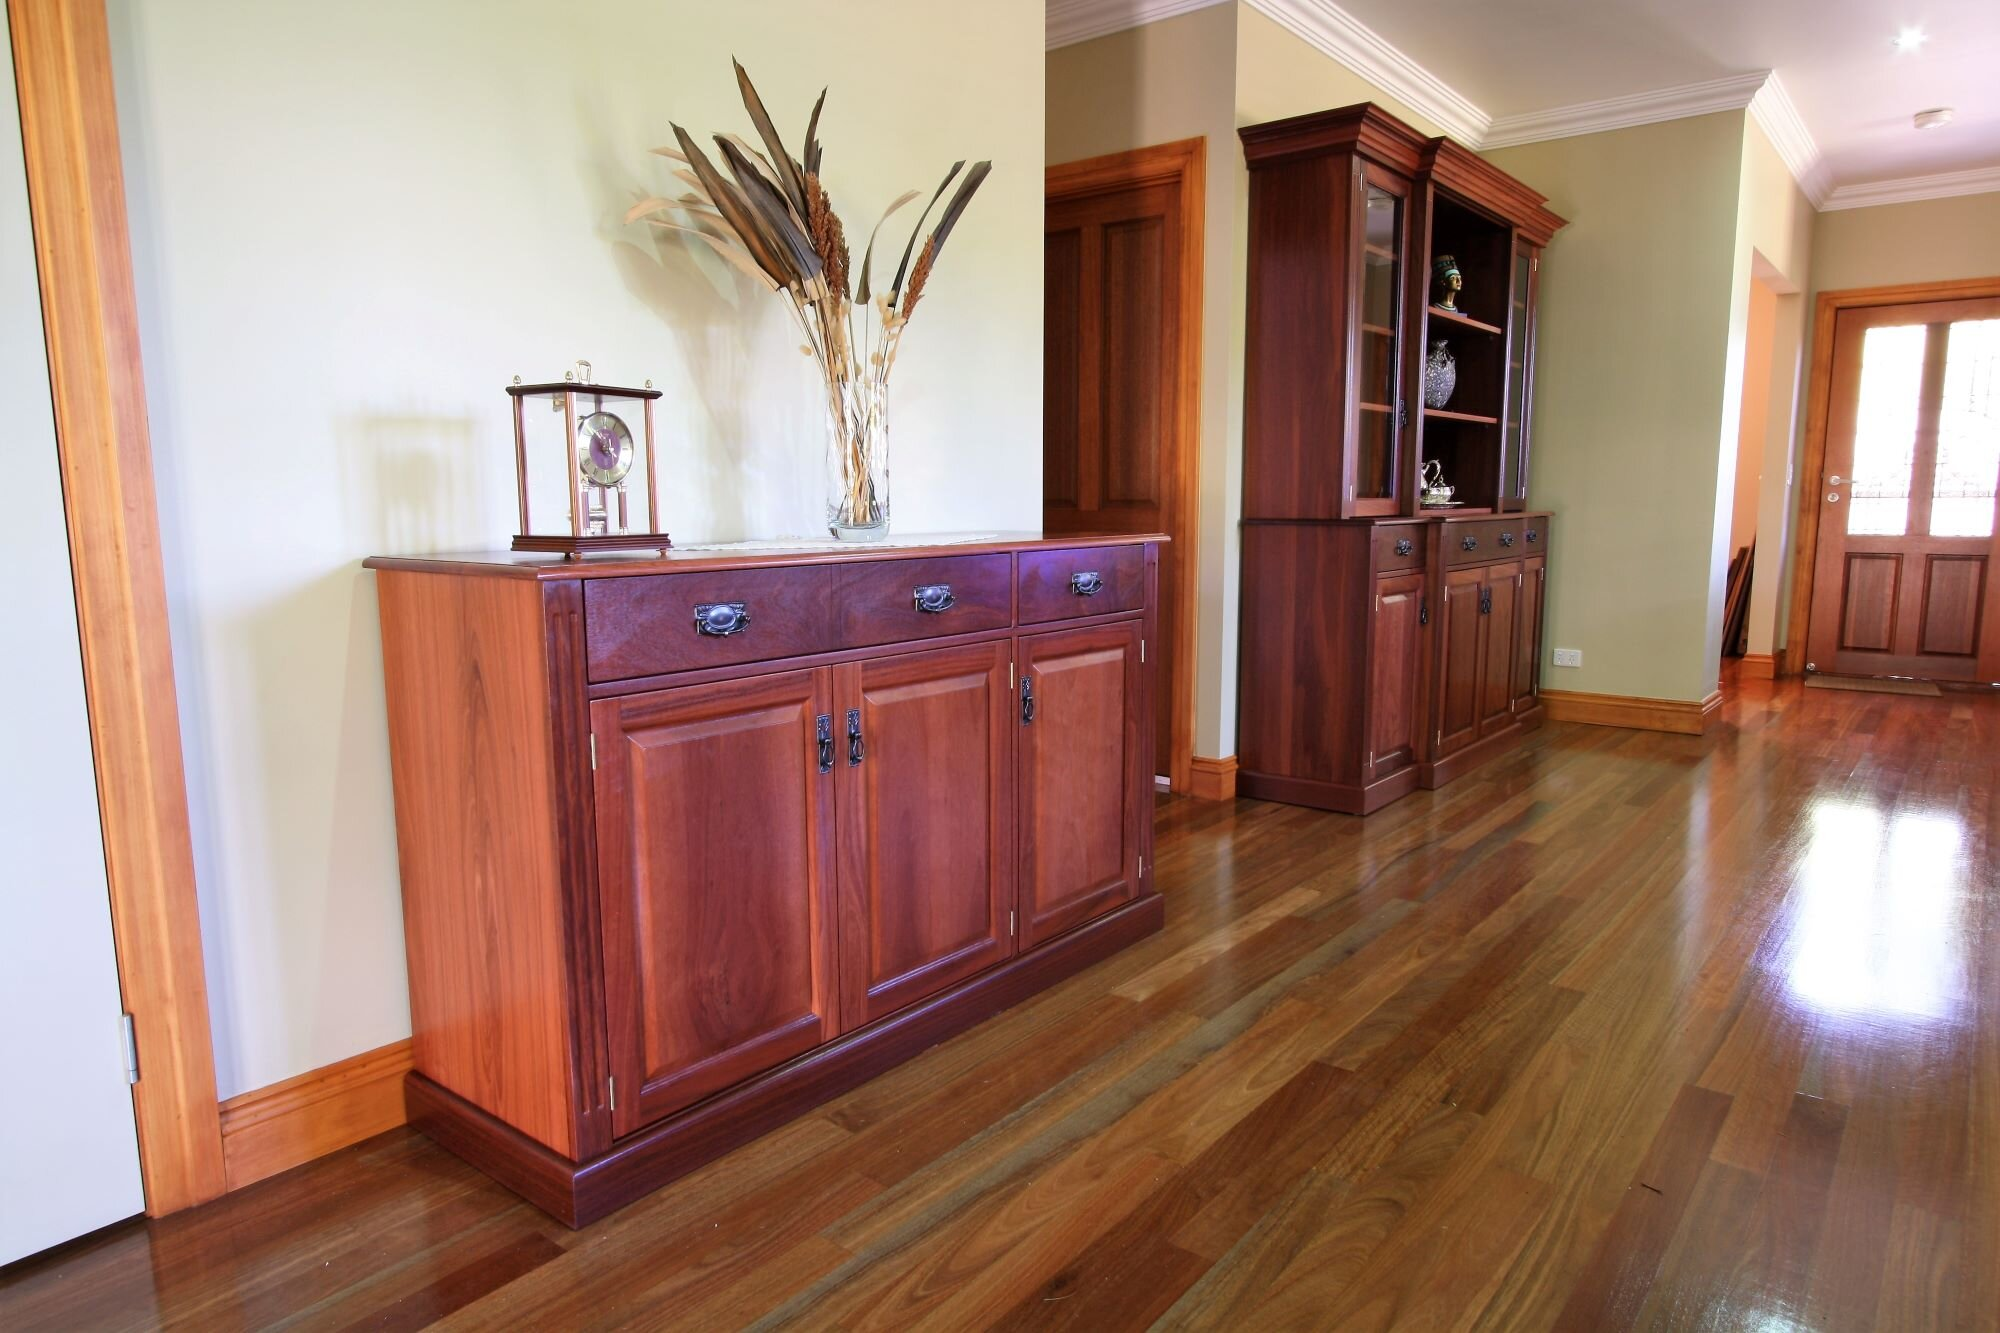 sideboard and bookcase bywater design.jpg